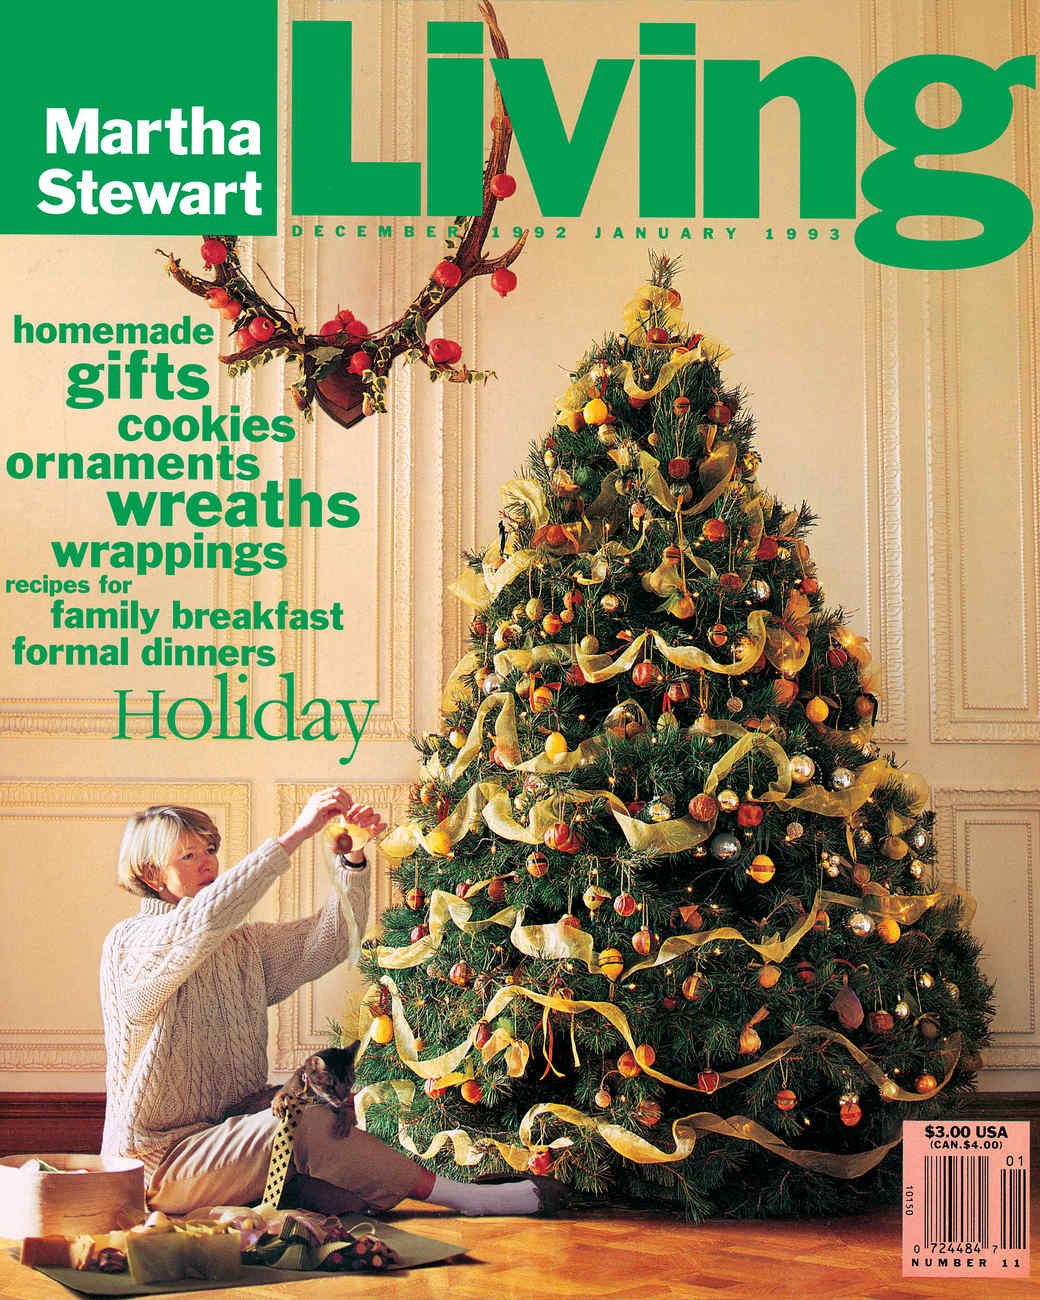 msl-cover-holiday-1992.jpg